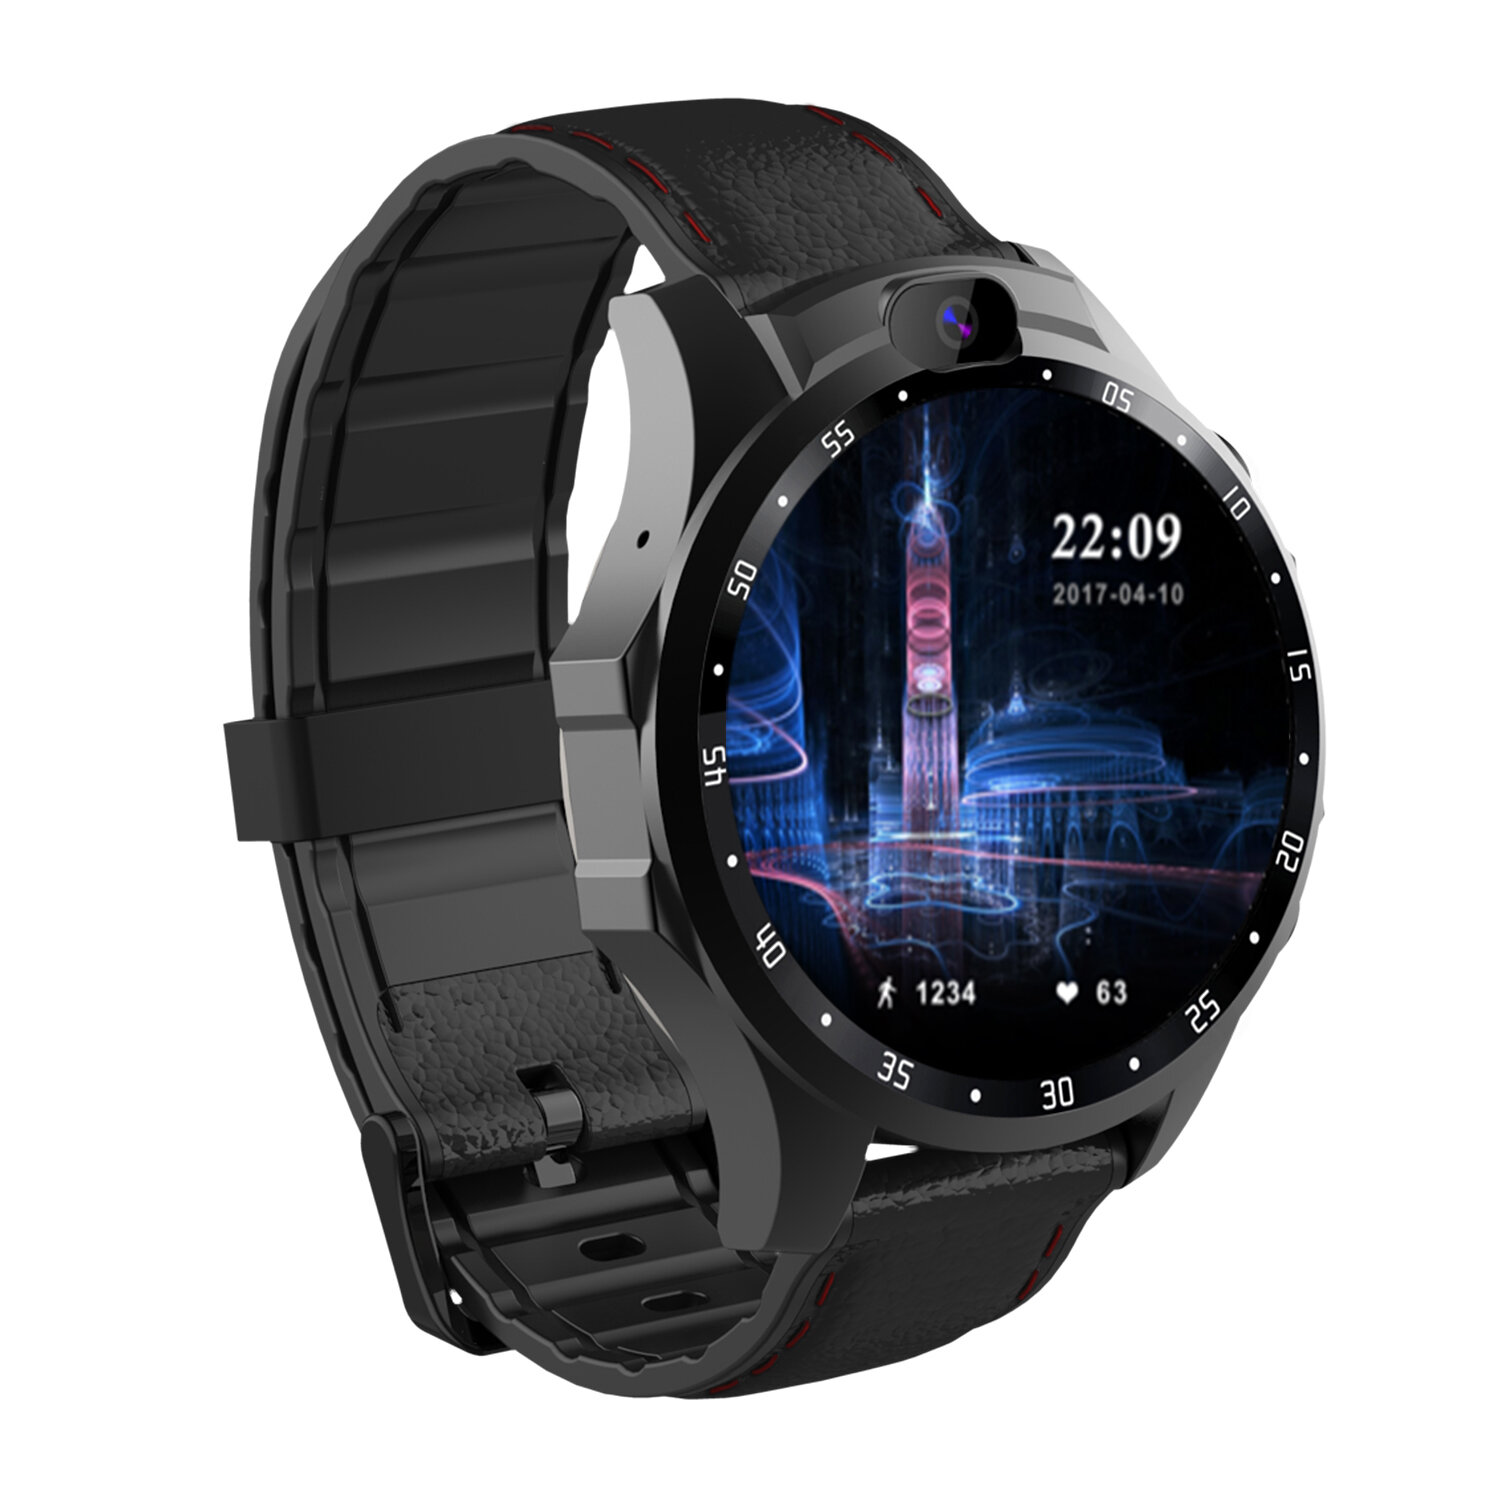 JSBP X361 Pro 4G 3+32G Dual HD Camera GPS Positioning Smart Watch Phone 1.6'' Touch Screen Waterproof Heart Rate Monitor Mobile Theater Fitness Sports Bracelet - 4